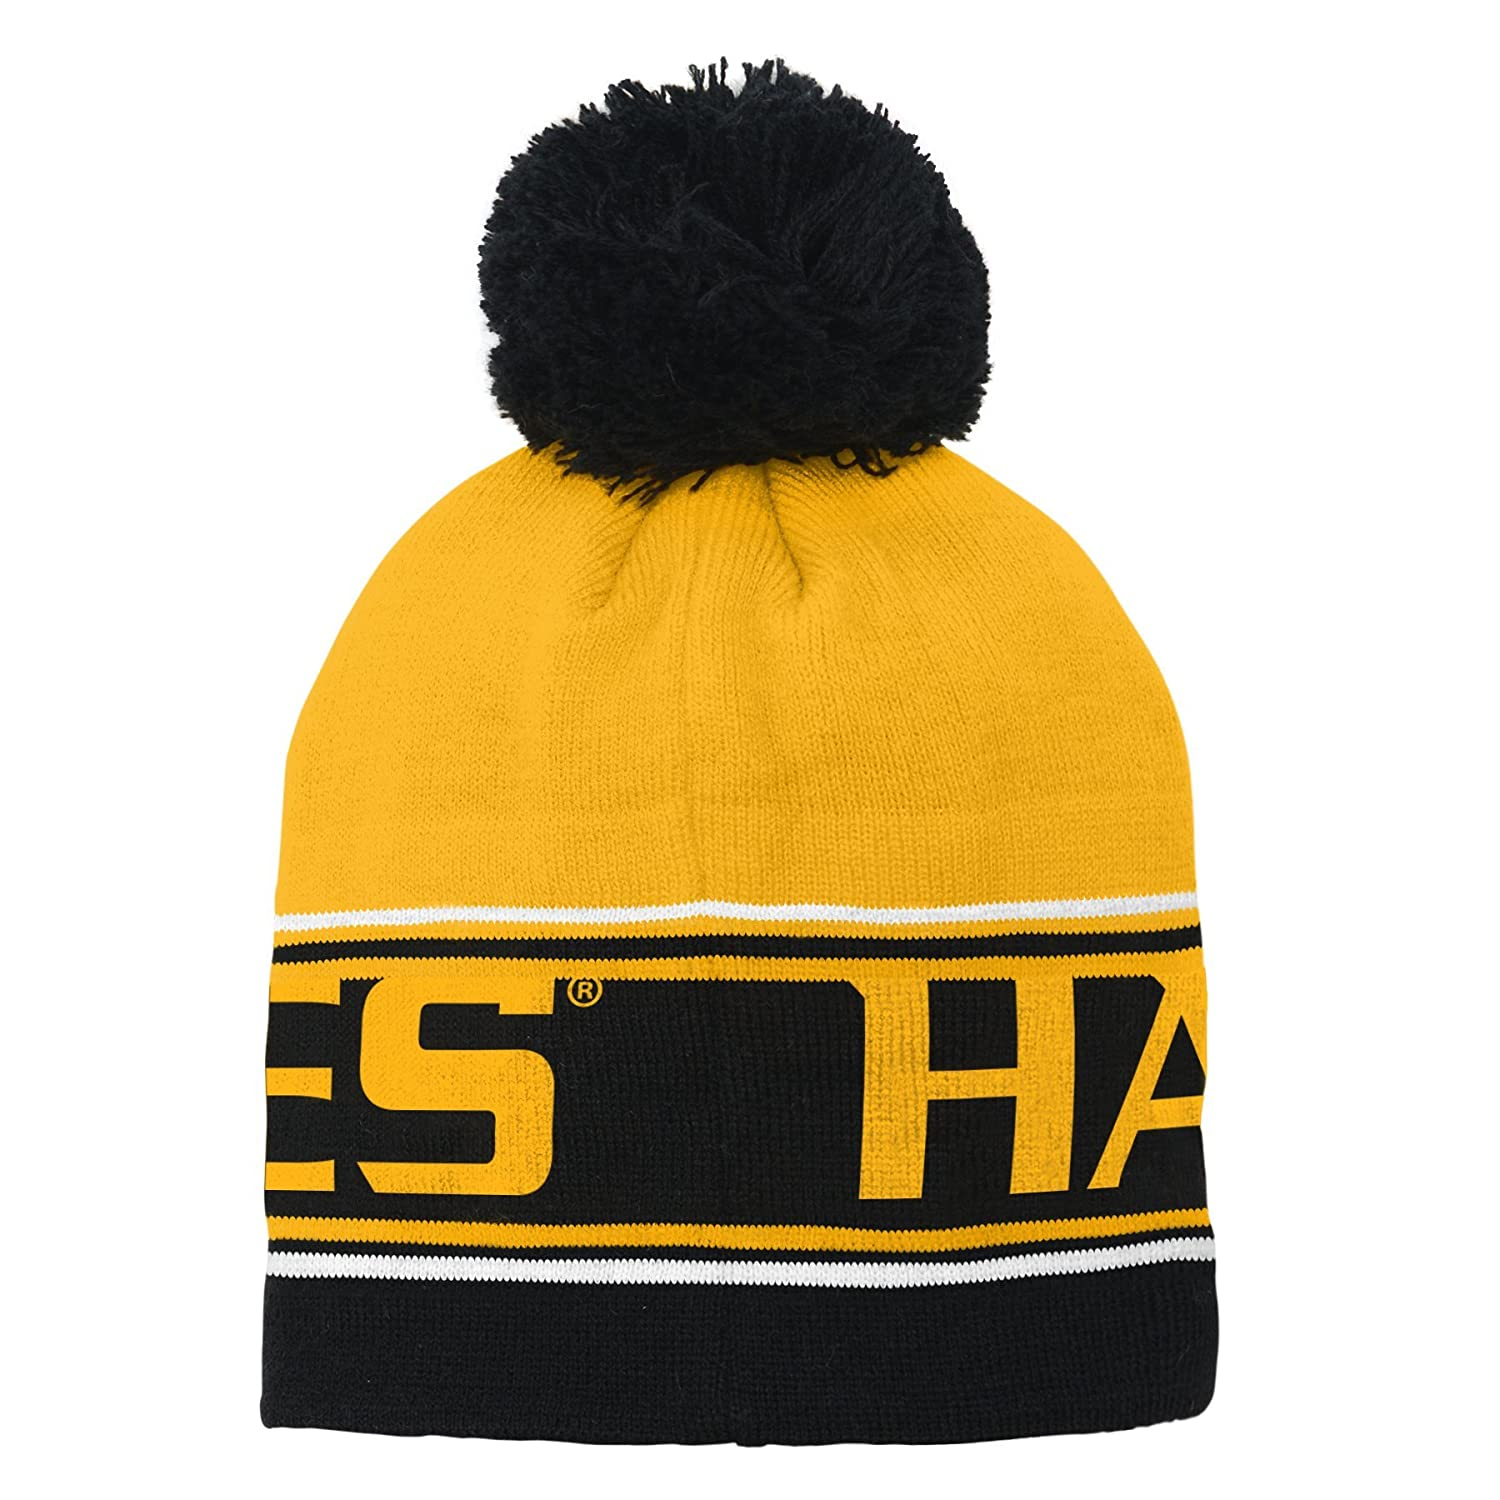 NCAA by Outerstuff NCAA Youth Boys Knit Hat with Pom